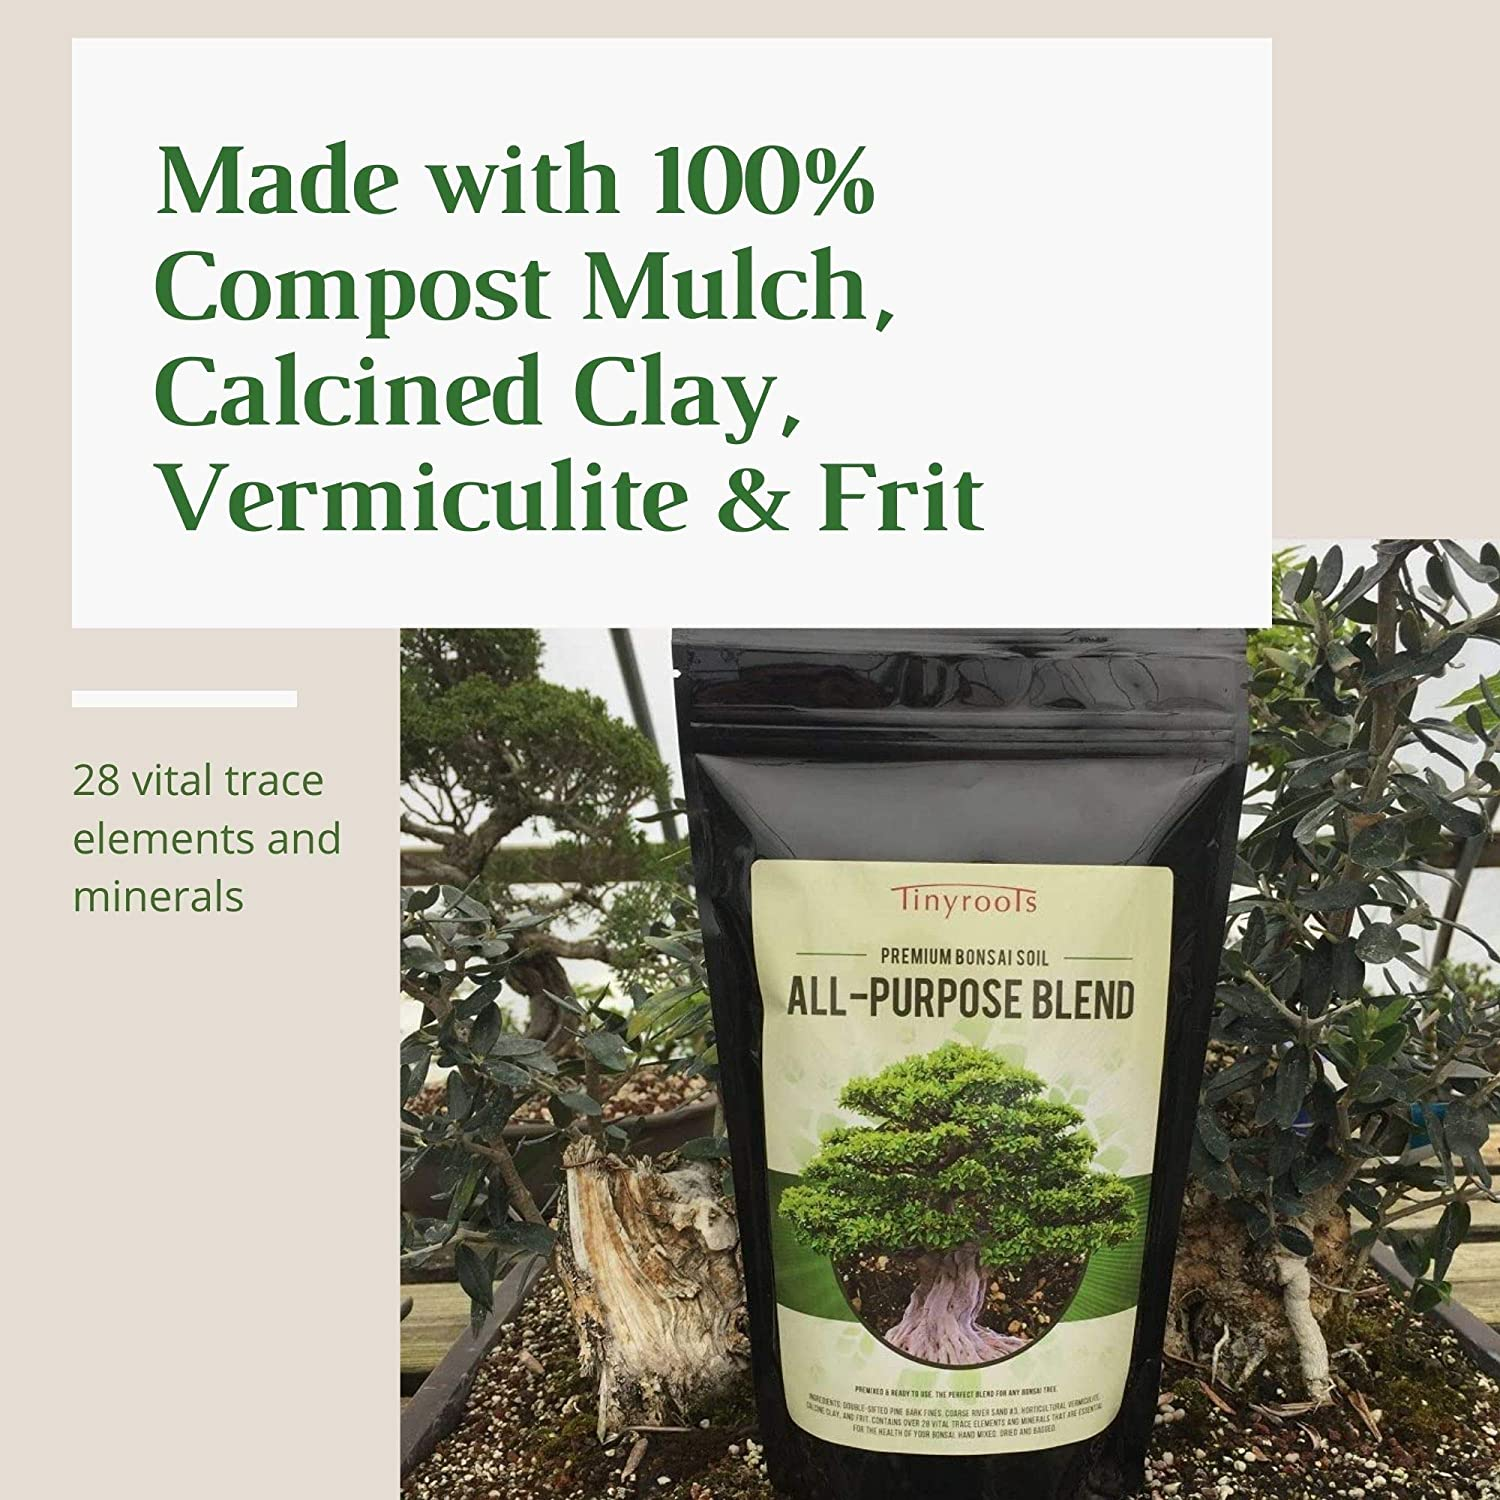 Amazon Com Bonsai Soil By Bonsai Outlet Tinyroots All Purpose Soil Mix Used For Potting All Varieties Of Bonsai Trees 2 5 Gallon Garden Outdoor